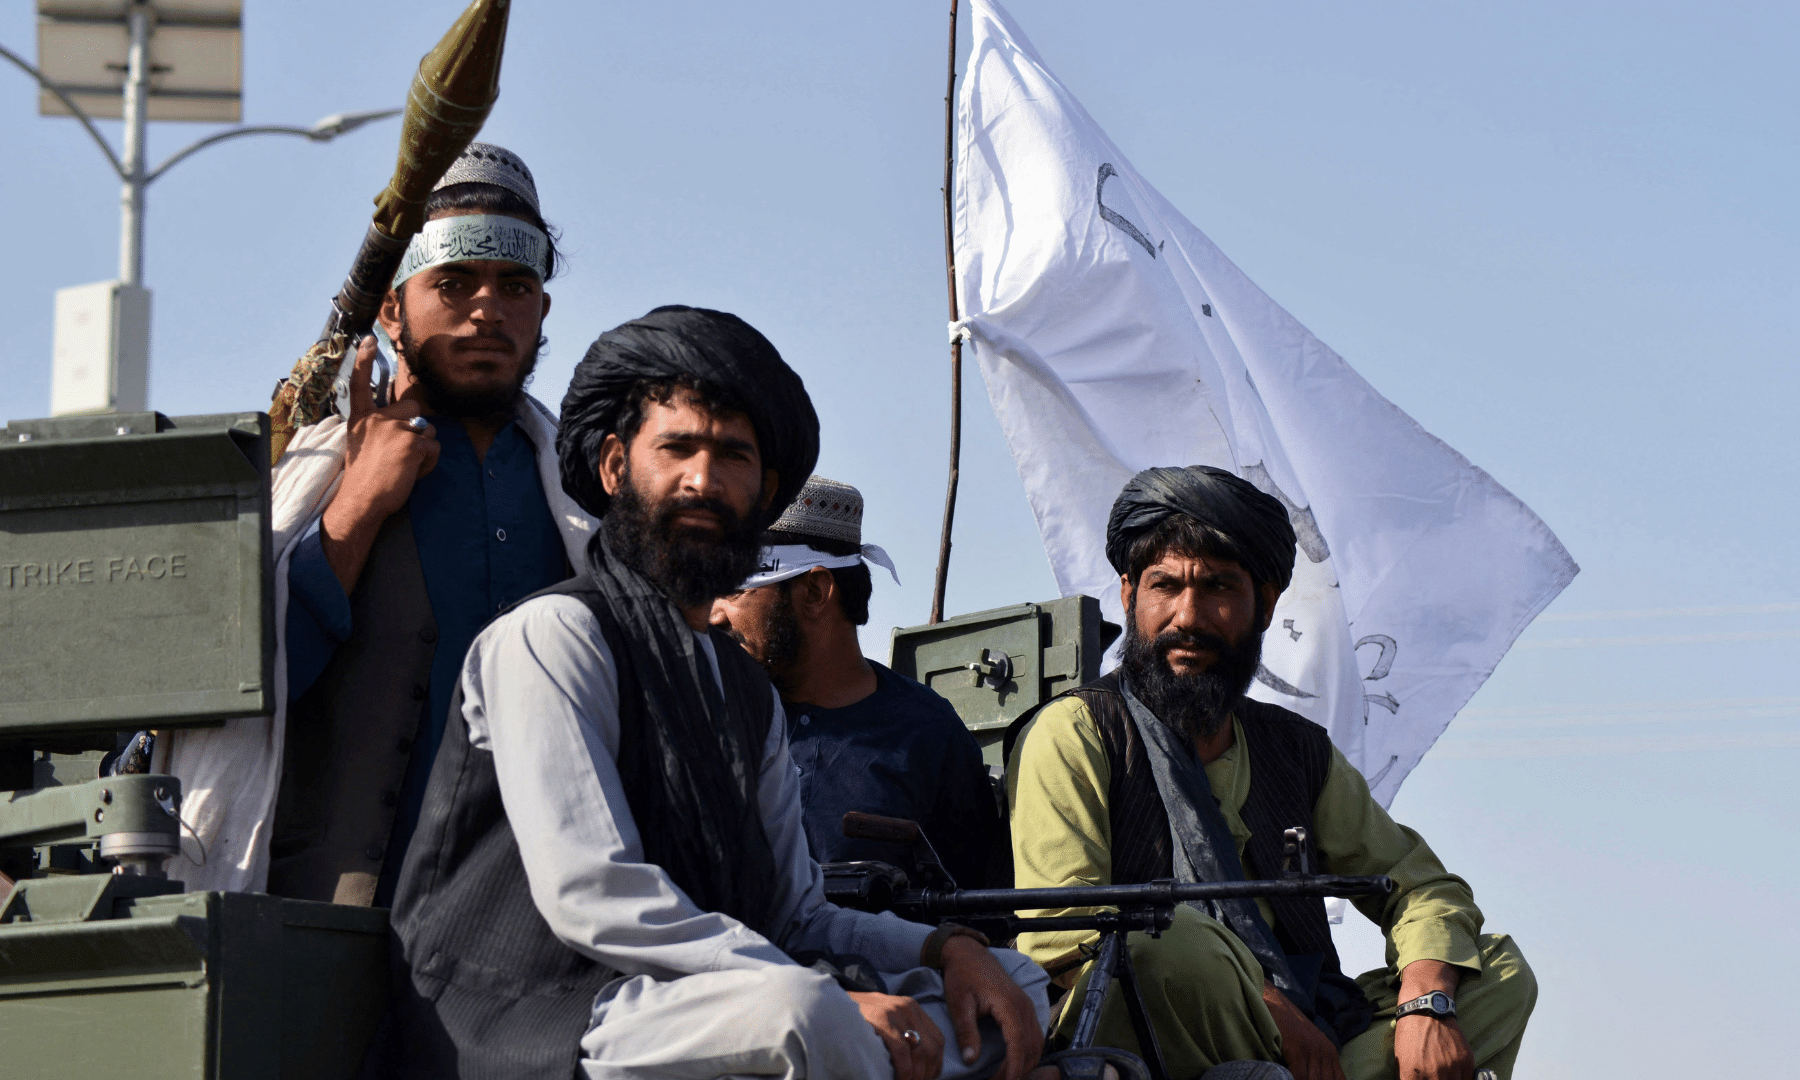 Taliban fighters stand on an armoured vehicle in Kandahar.